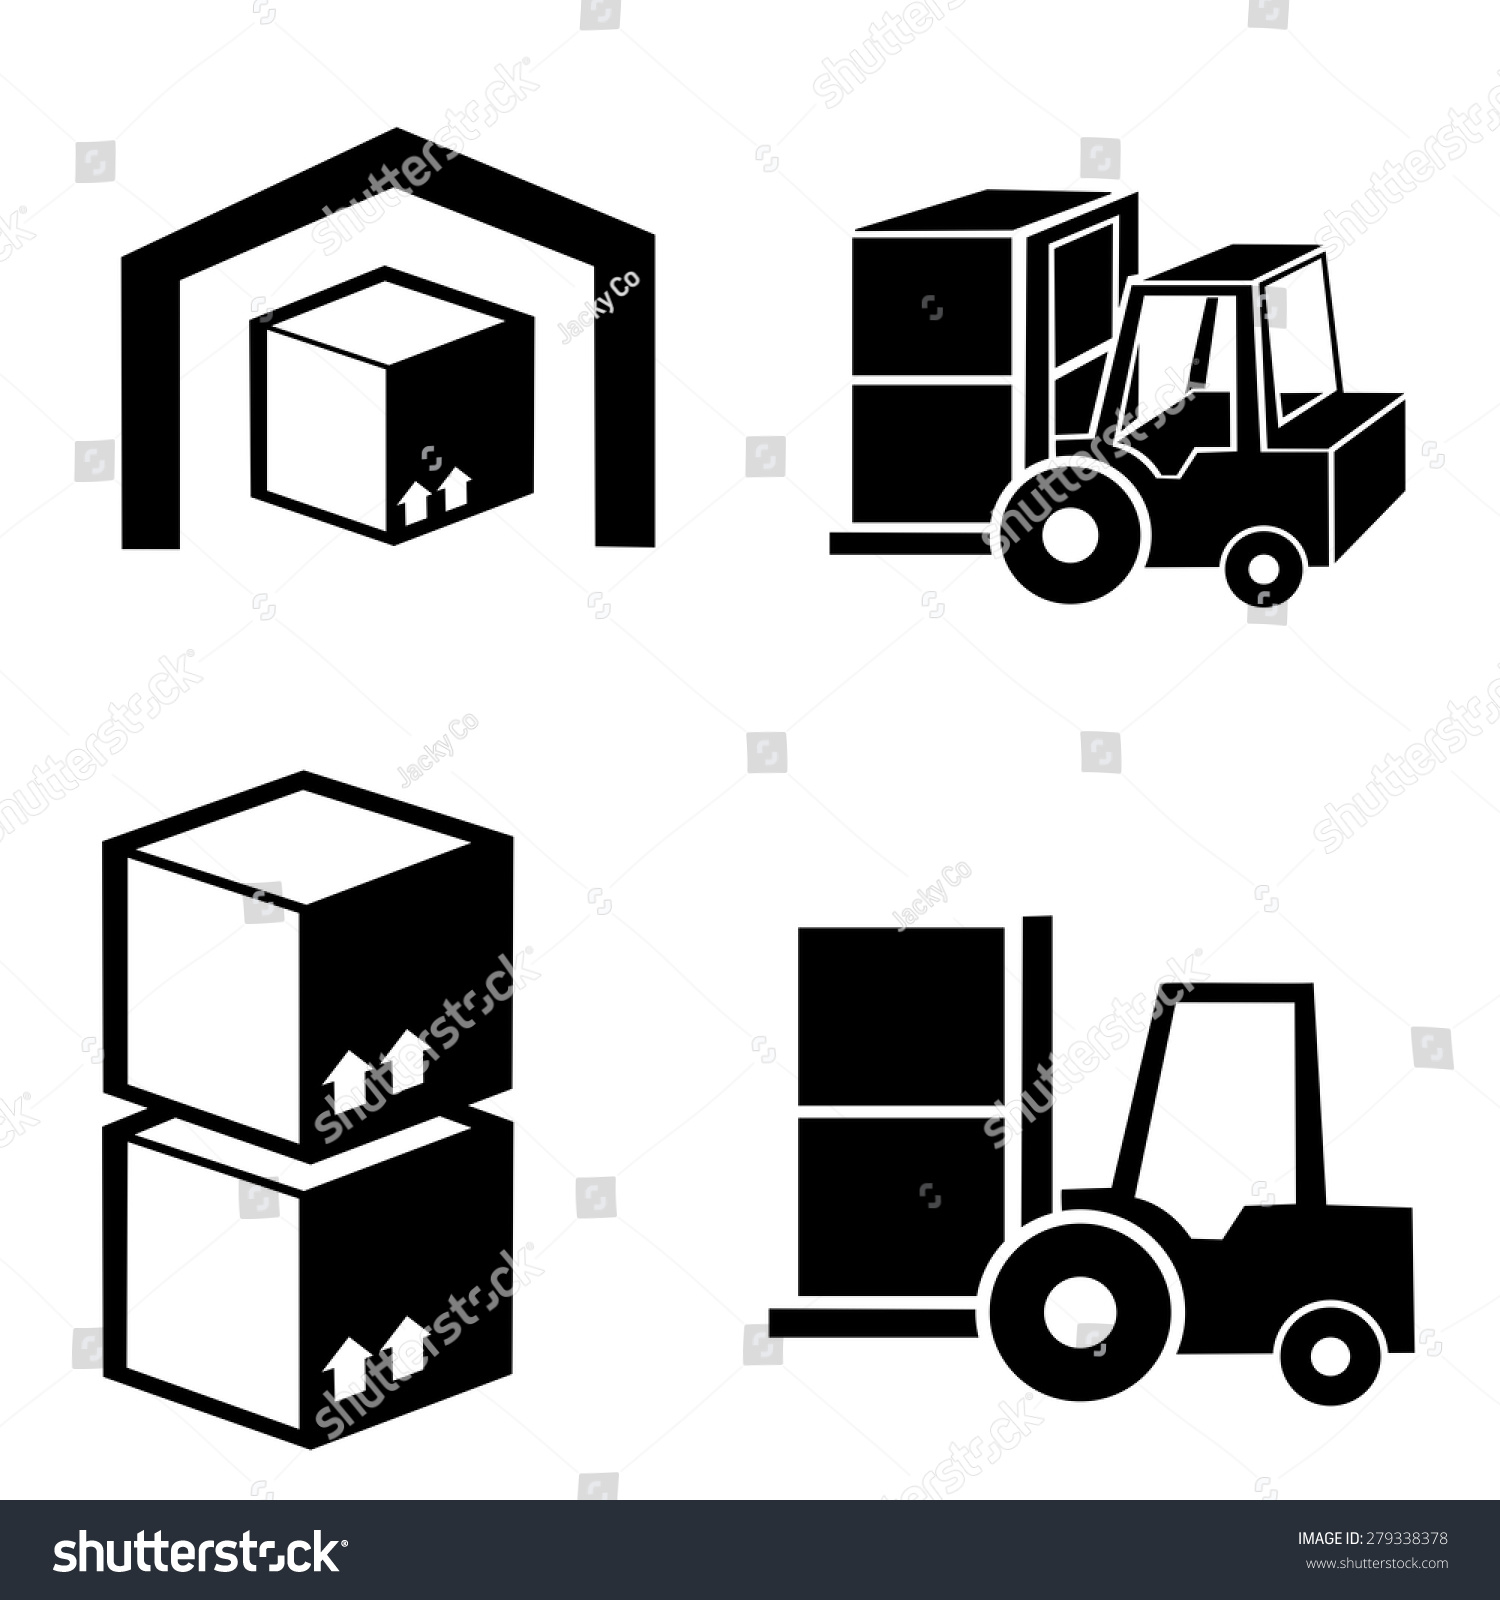 delivery truck icon vector - photo #25